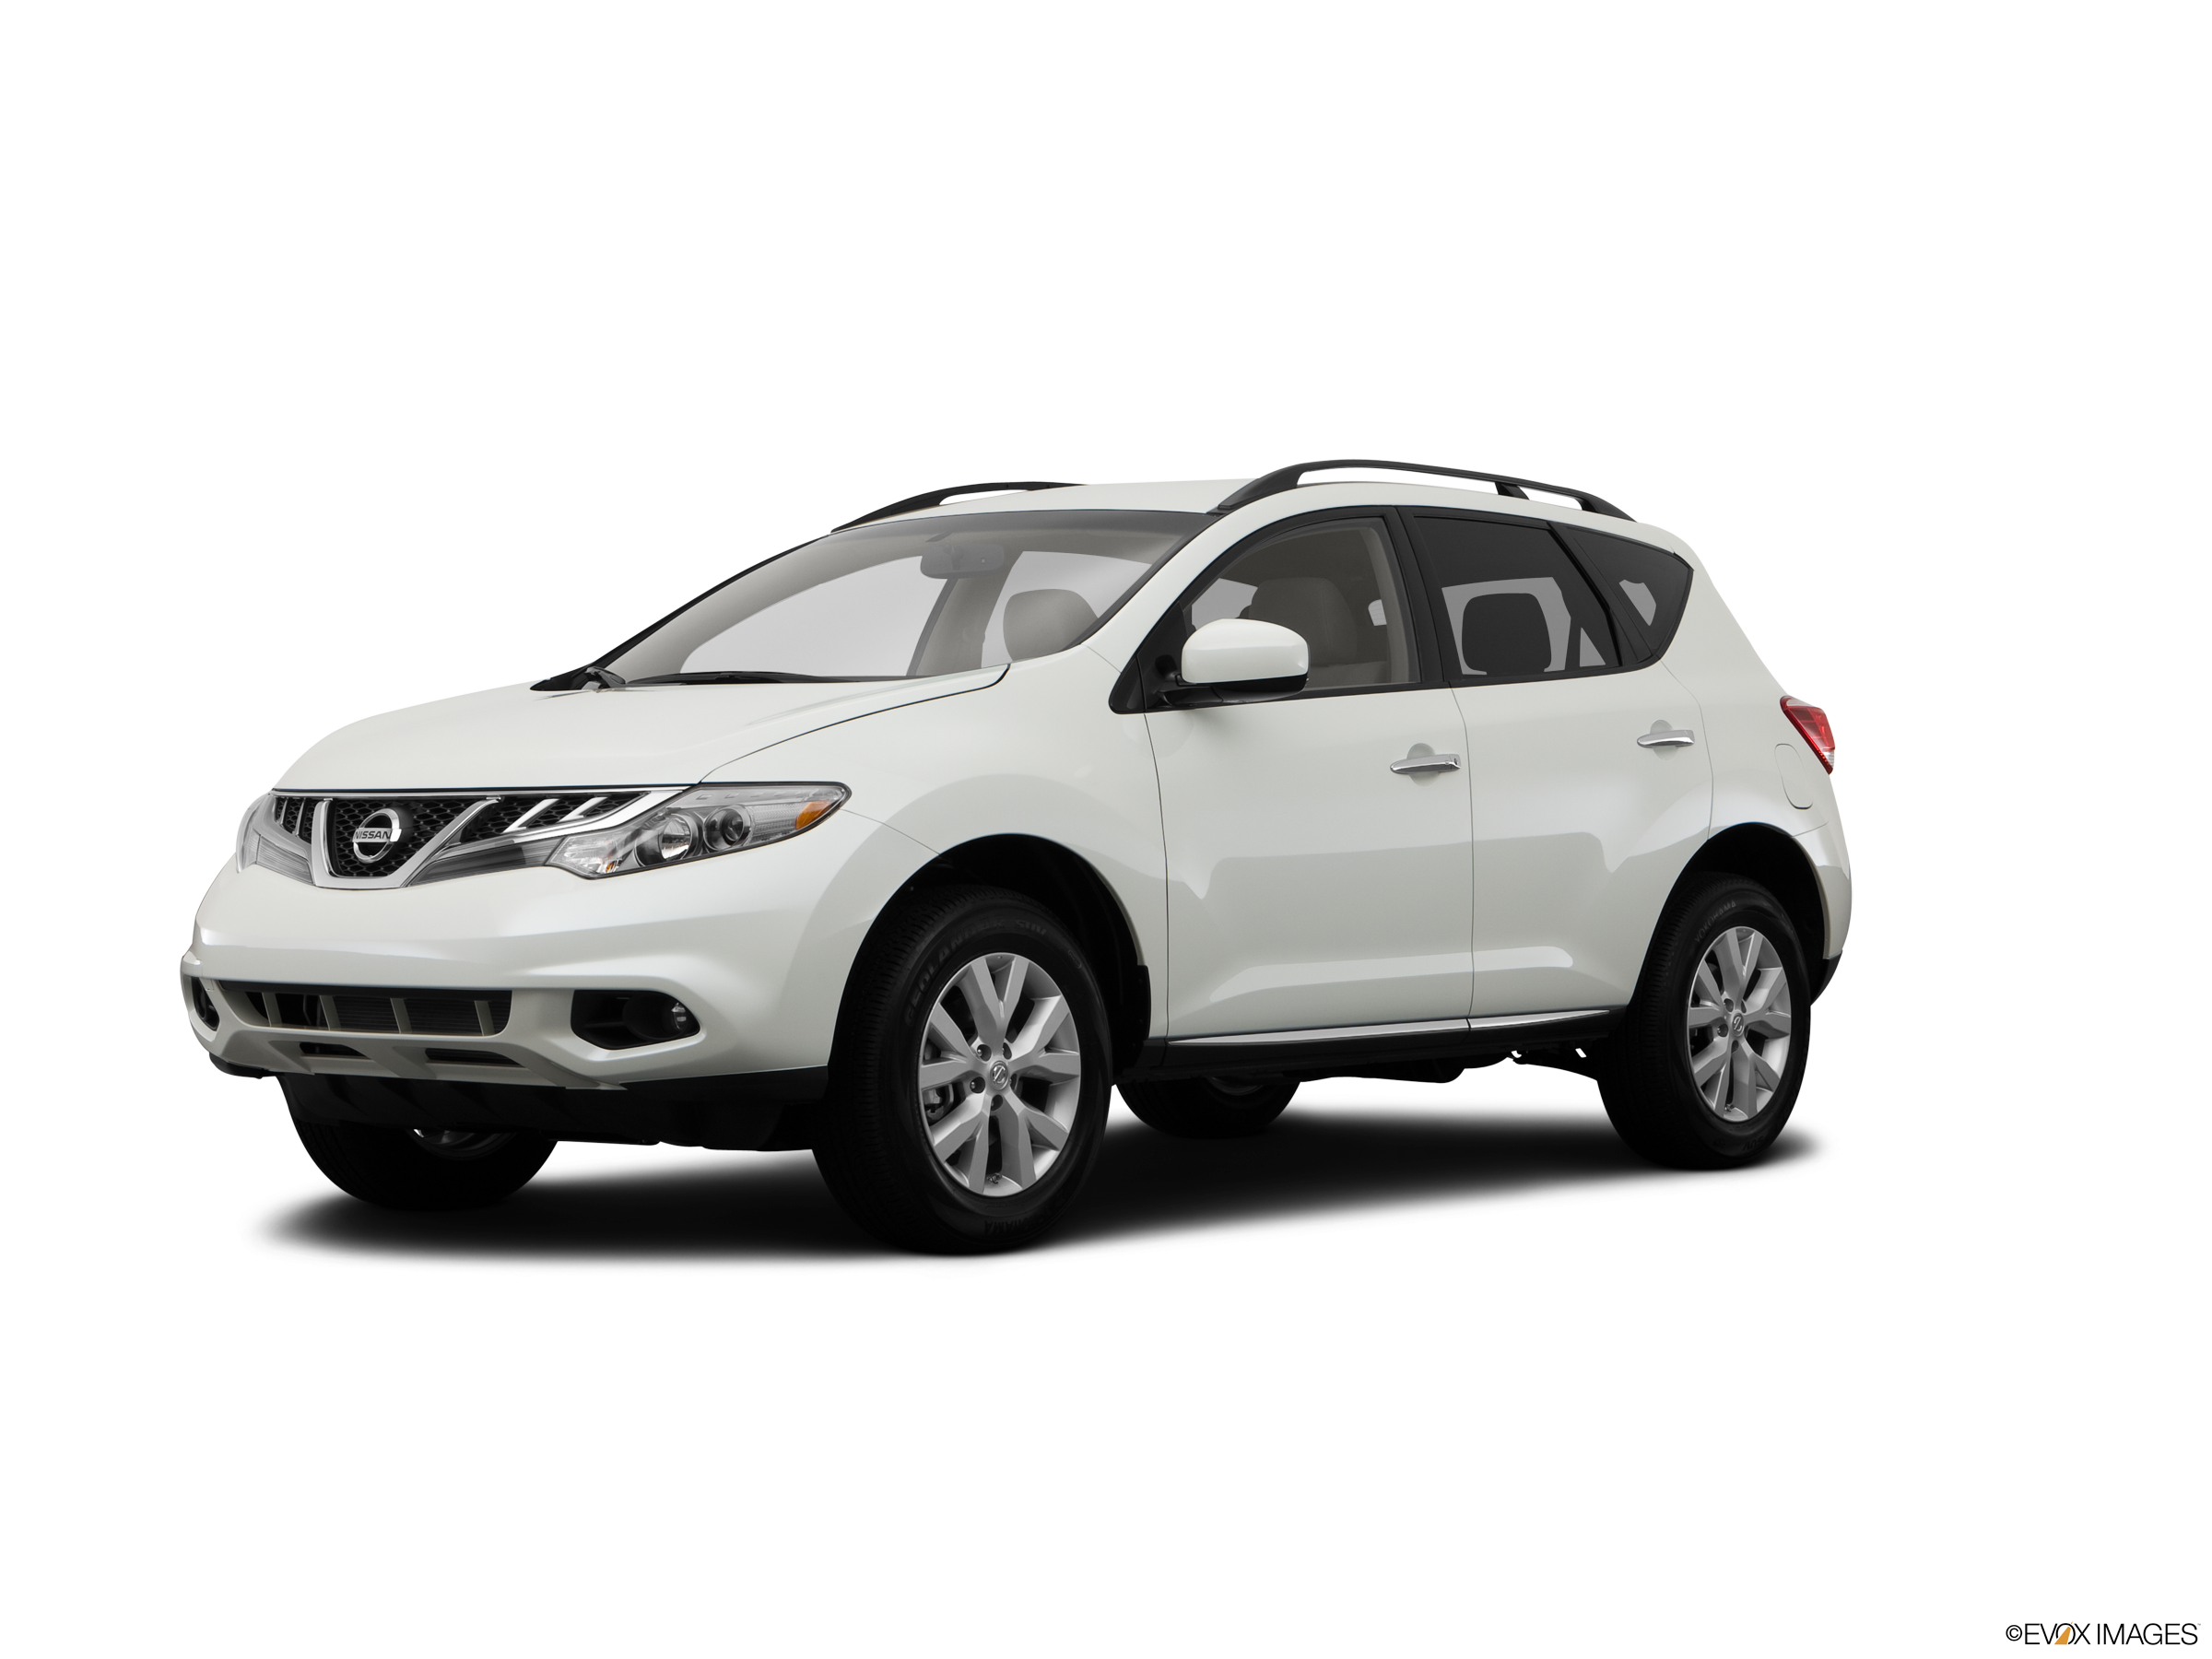 2014 Nissan Murano Values Cars For Sale Kelley Blue Book